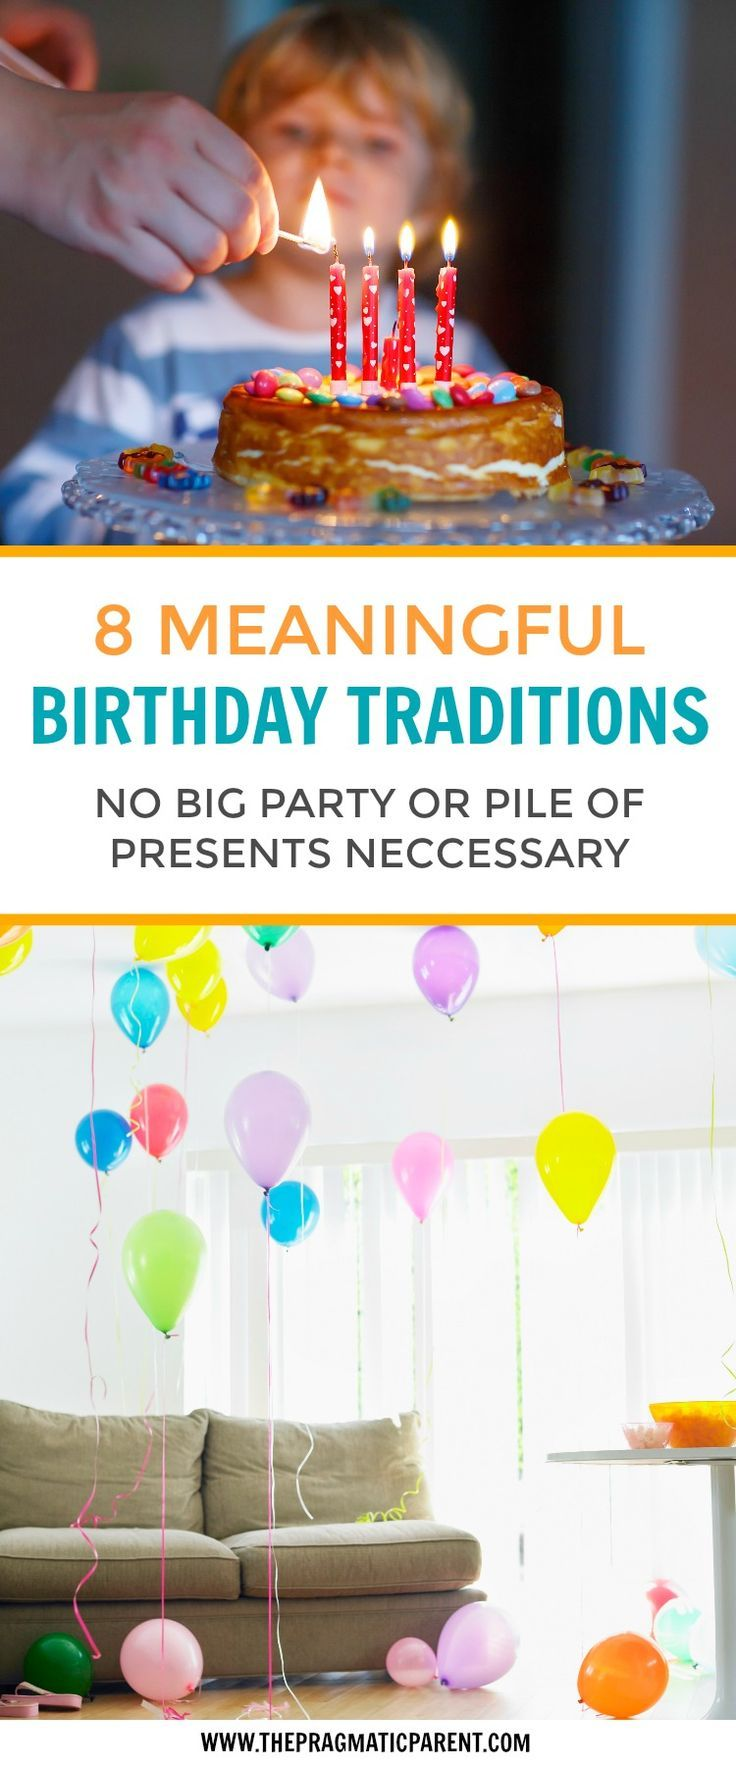 8 memorable Birthday traditions your kids and entire family will love to do every year. Build special memories with these birthday traditions. Kids don't need big b-day parties or a pile of presents to remember how special their birthday or they are. They want to be showered with love & attention on their birthday and this doesn't mean you have to spend a lot of money on a party or presents.